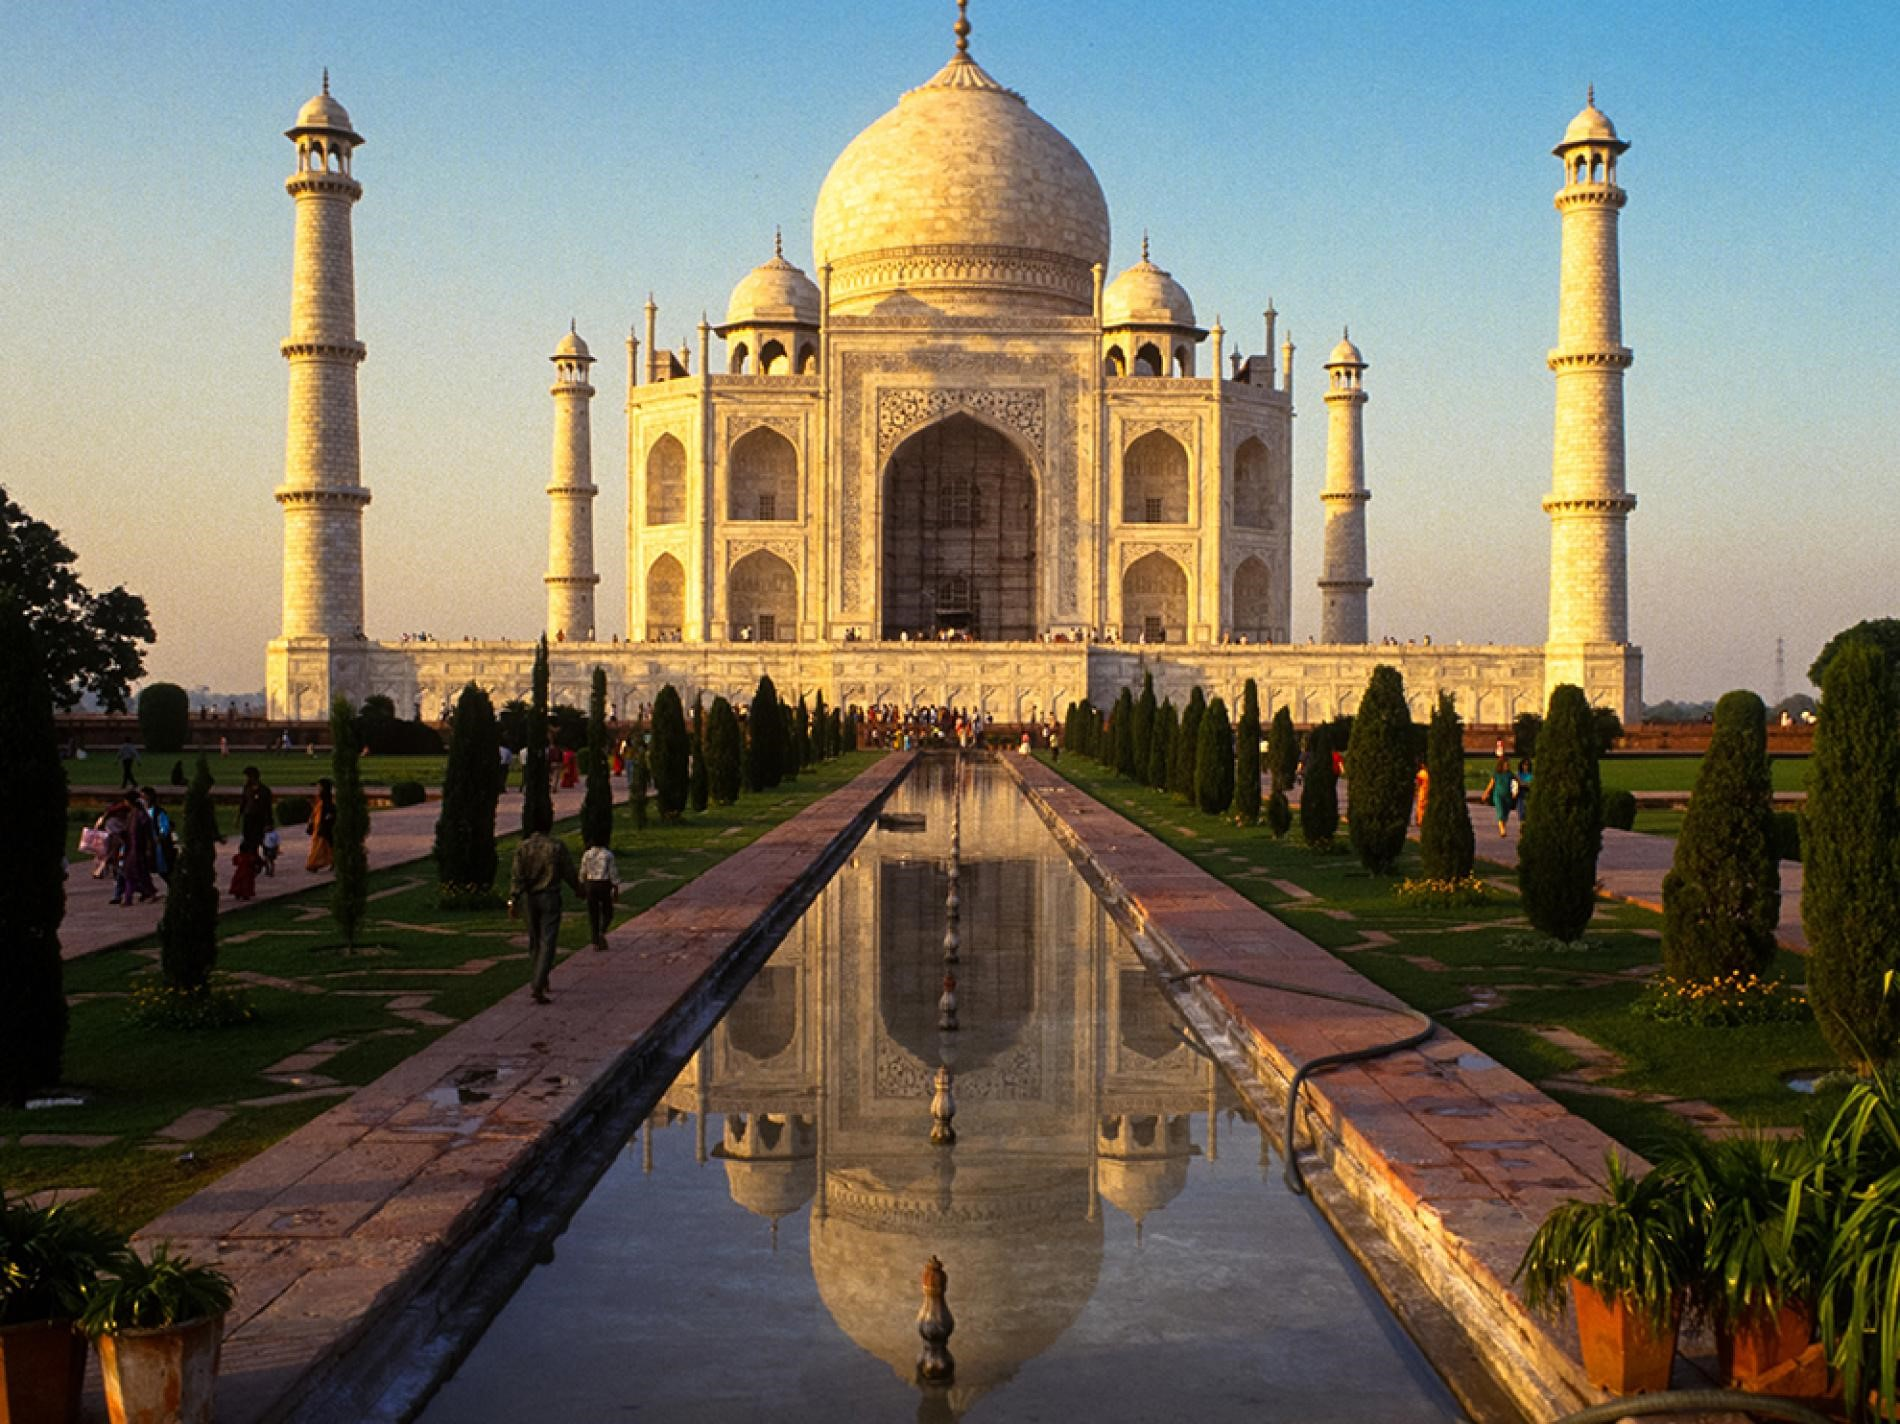 Day 3: New Delhi – Agra: (Approx. 200 Kms/3:30 hrs. drive)